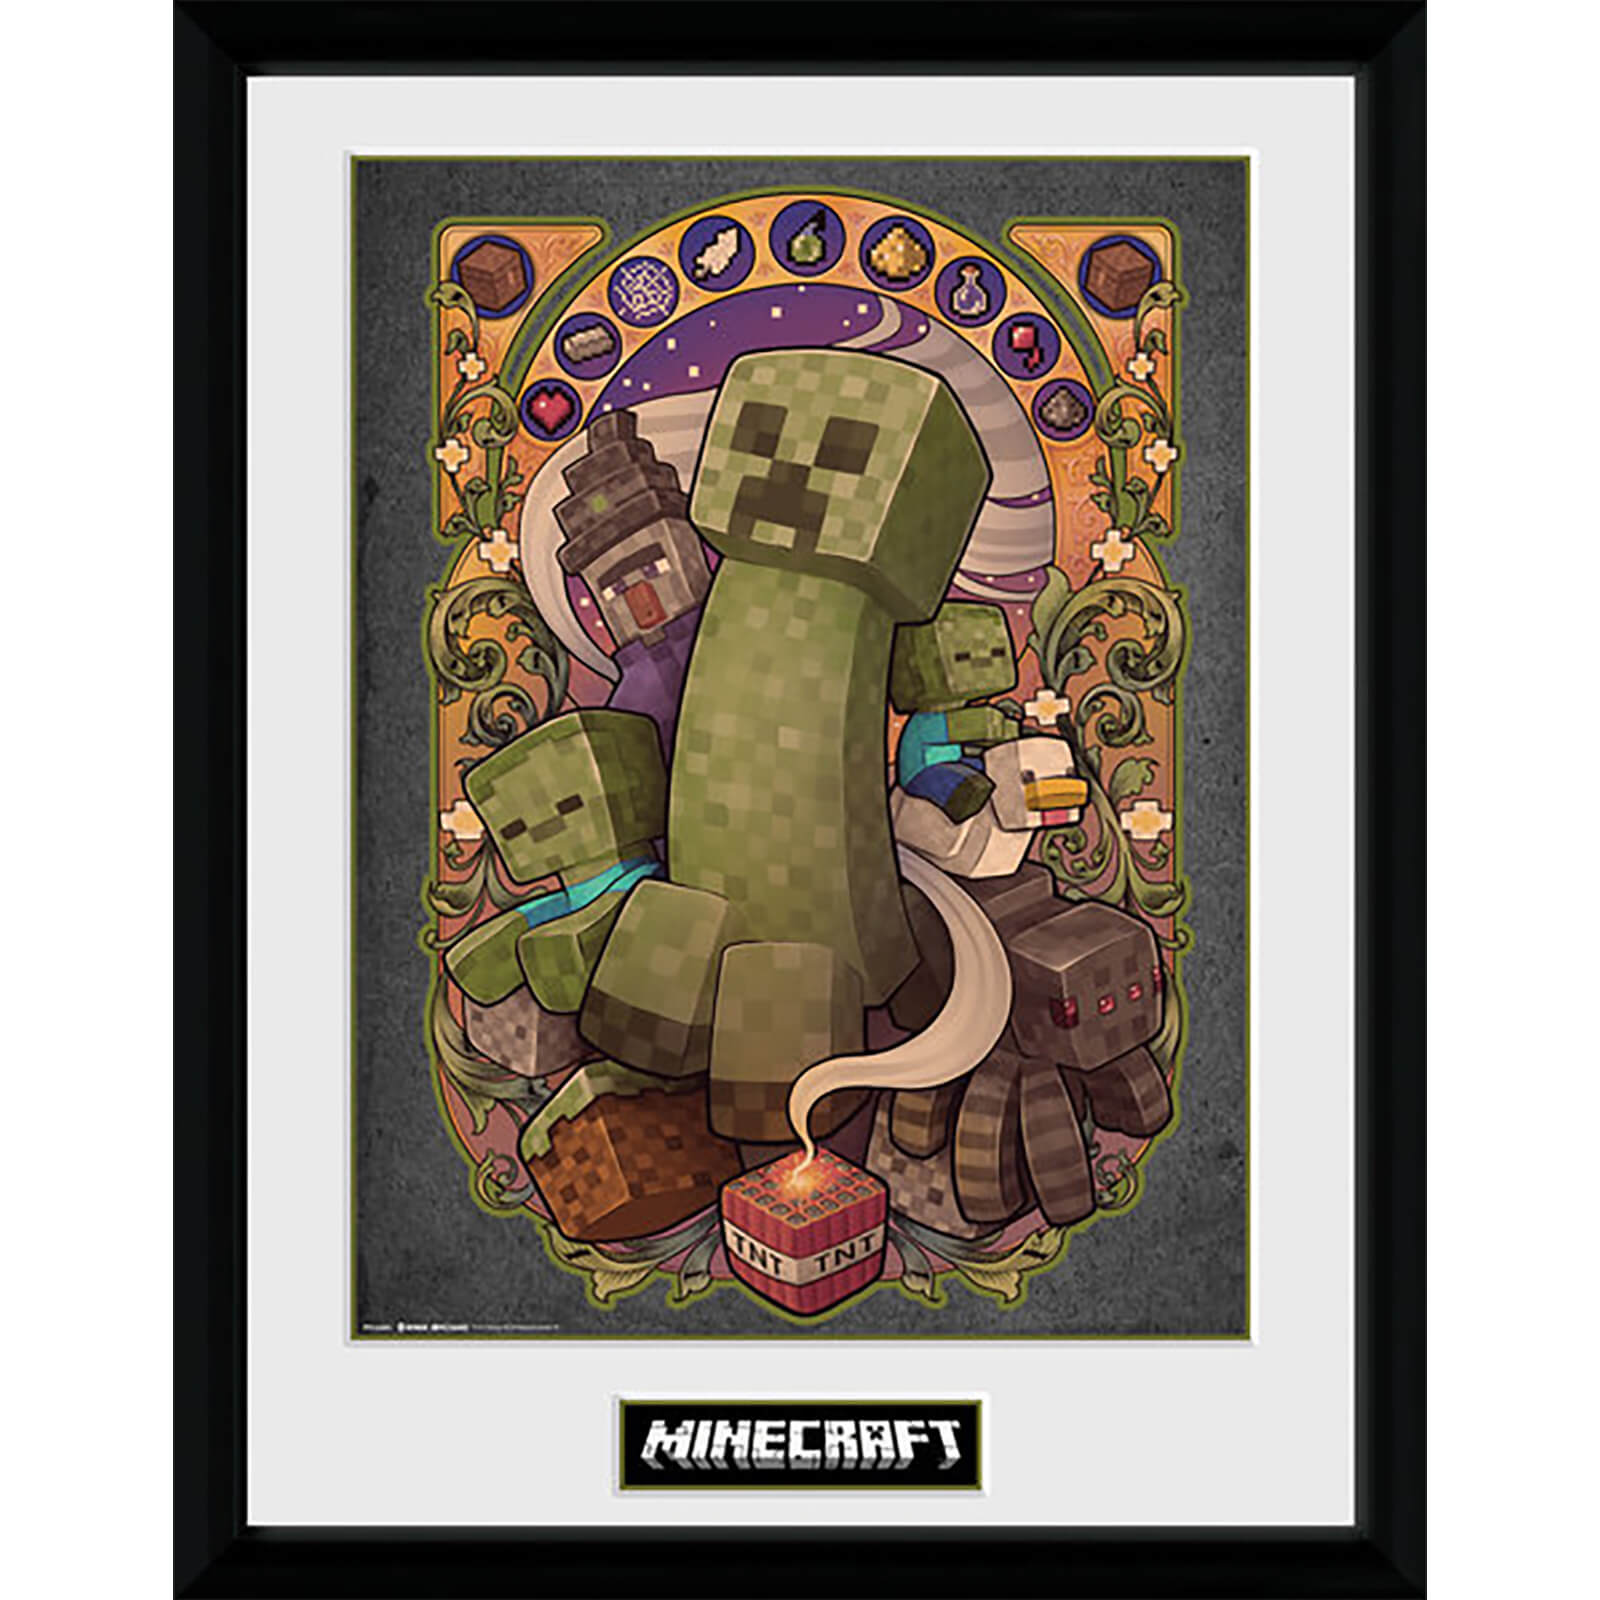 Minecraft Creeper Nouveau - 16 x 12 Inches Framed Photograph